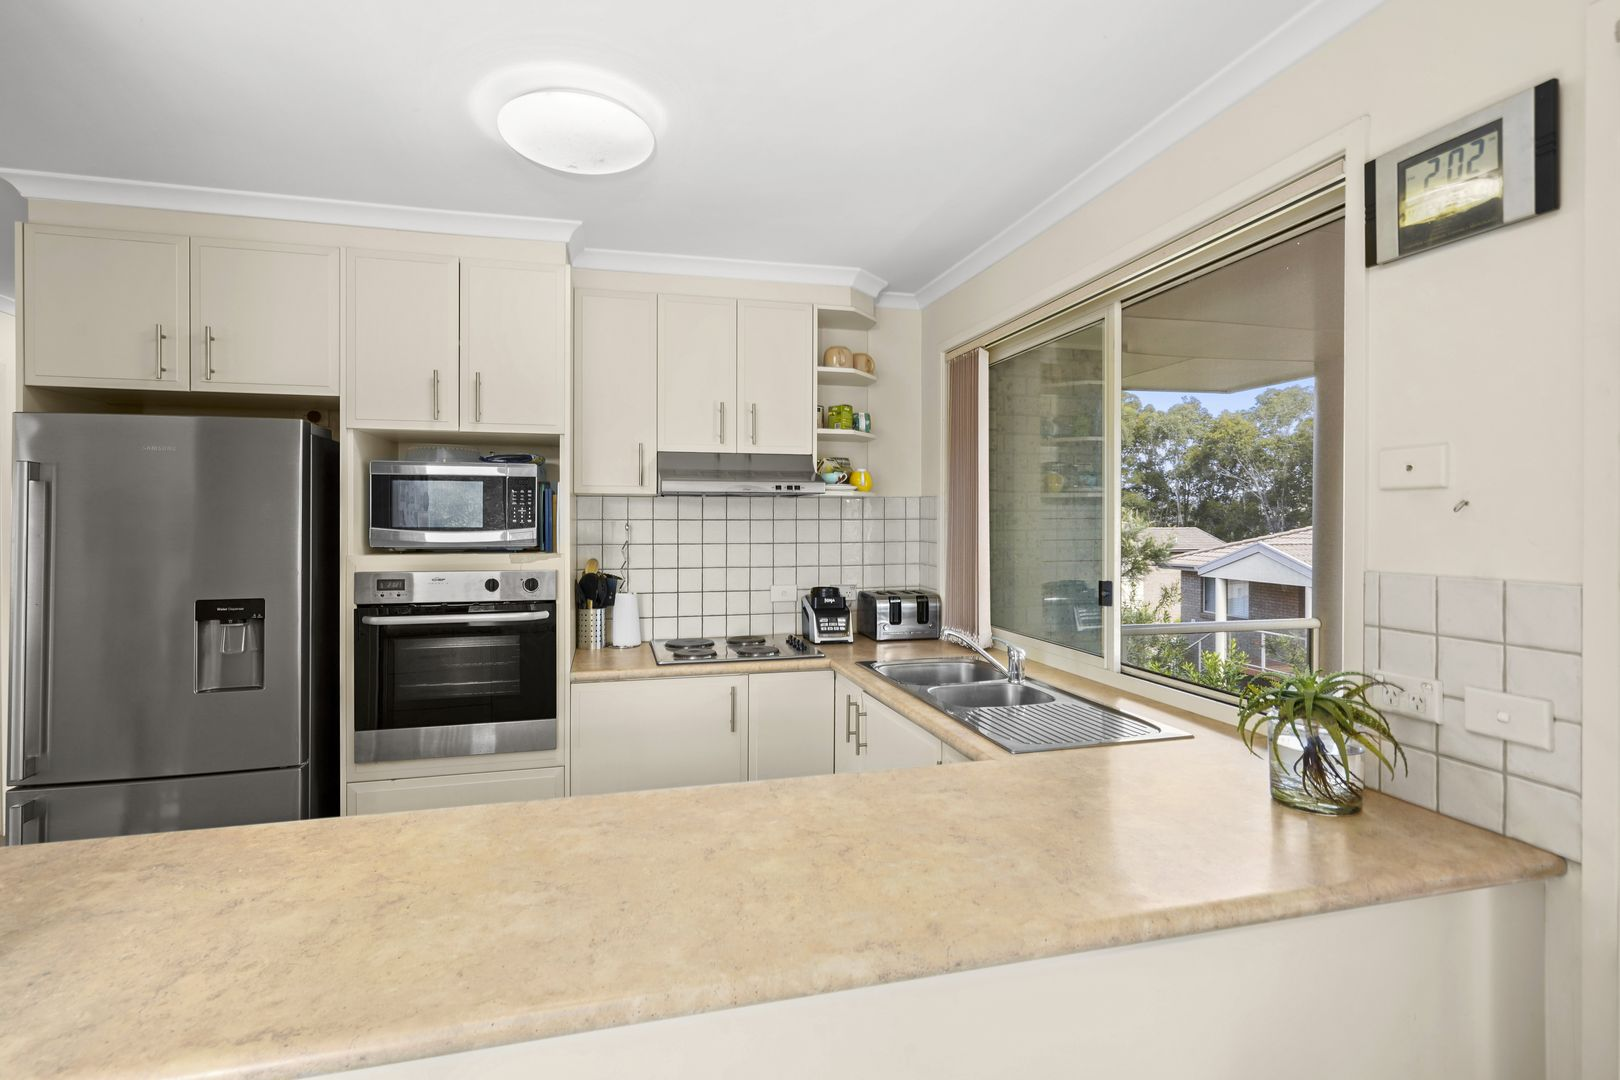 18/8 Lord Place, North Batemans Bay NSW 2536, Image 0